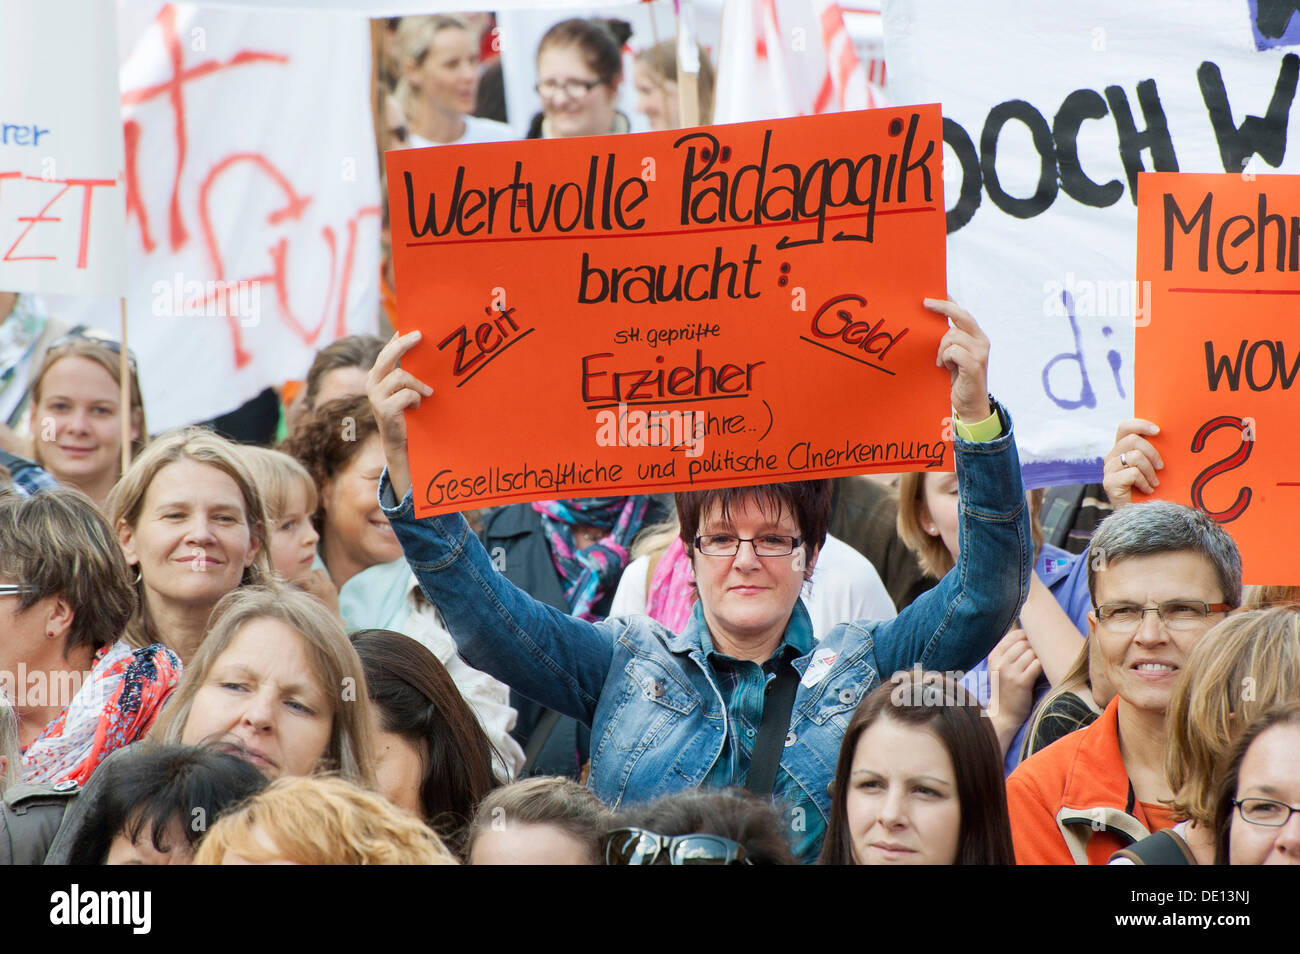 Sign 'Wertvolle Paedagogik braucht Zeit, Geld, Erzieher', German for 'constructive education needs time, money and educators', - Stock Image